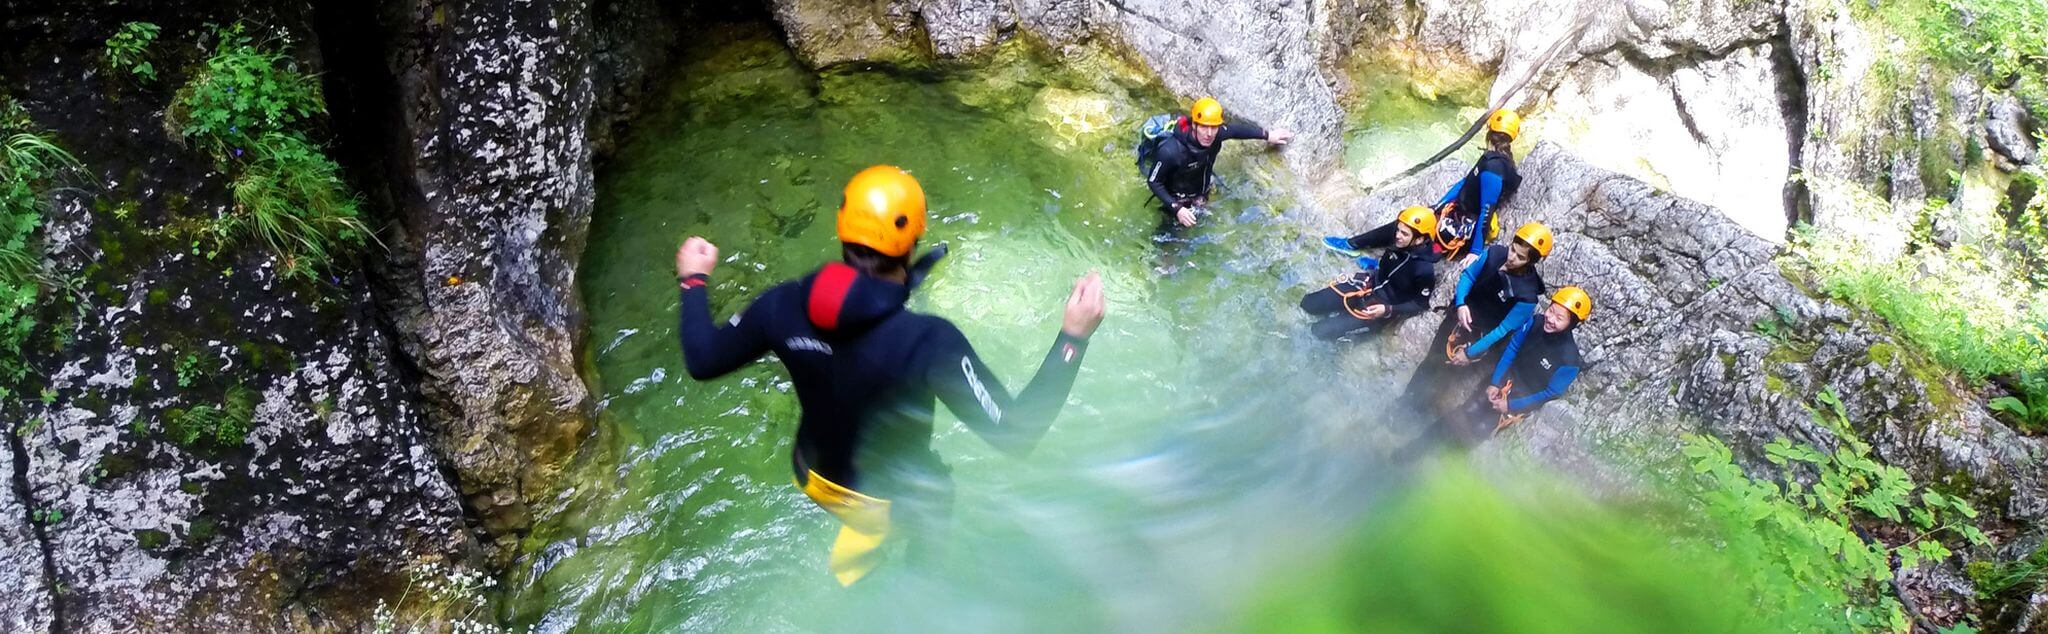 Canyoning in Belorado